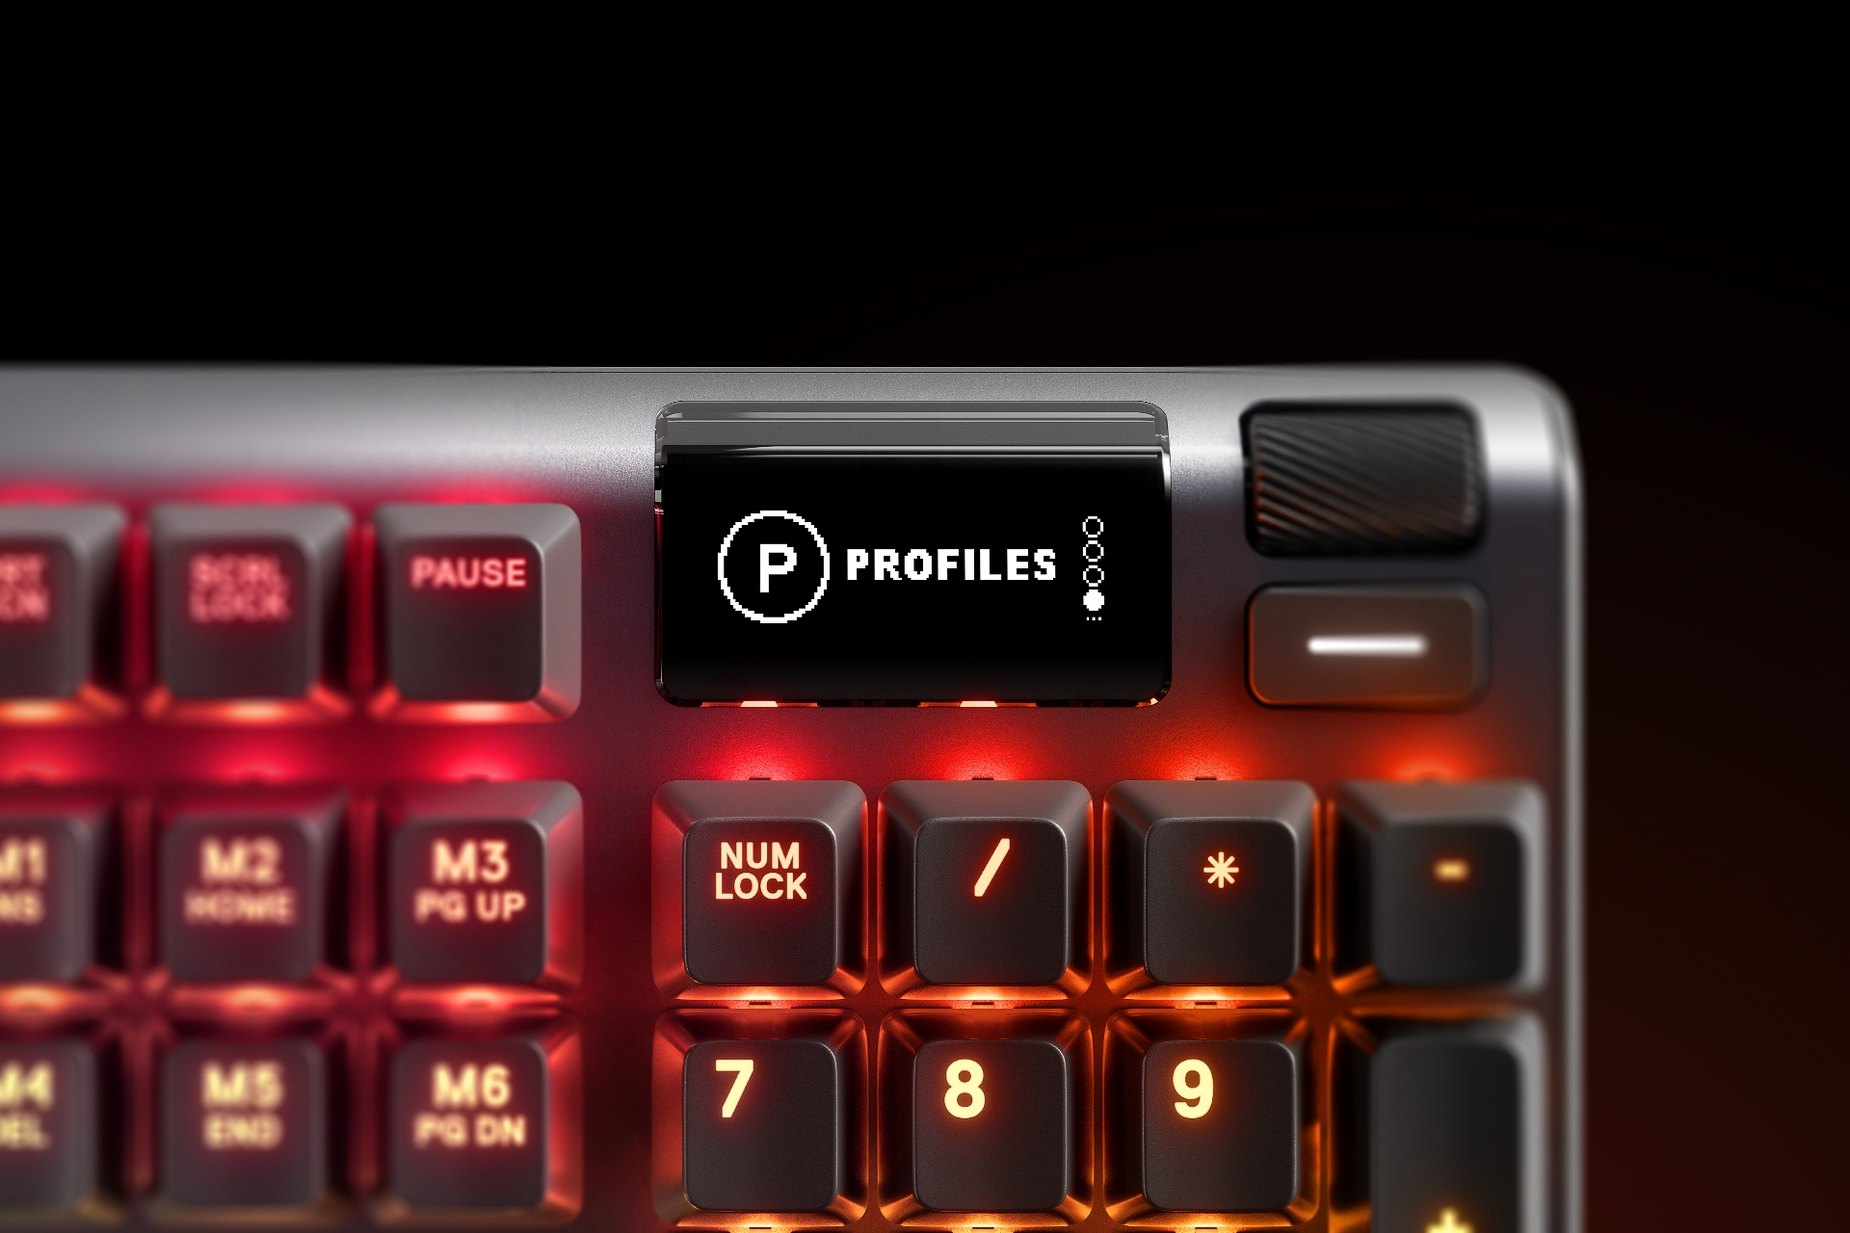 Zoomed in view of the multimedia and settings controls/volume roller on the French - Apex 7 (красные переключатели) gaming keyboard